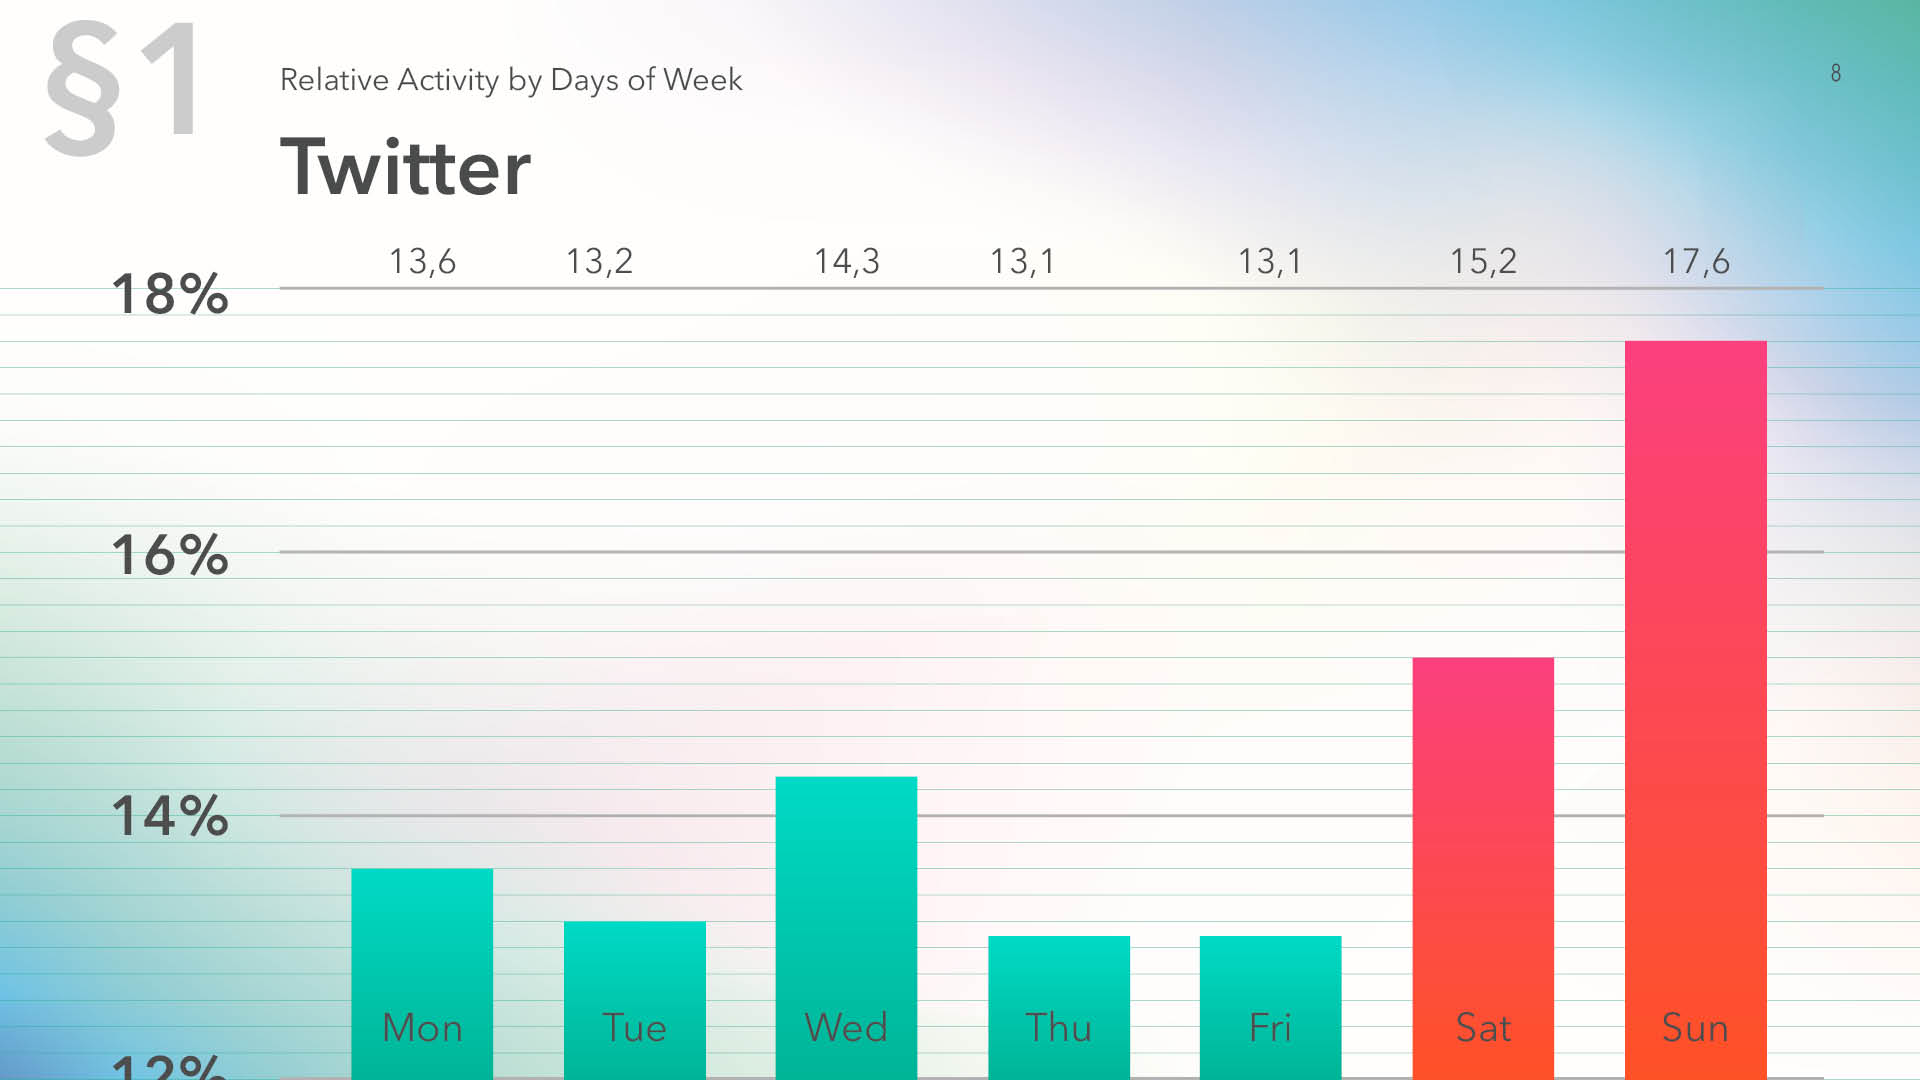 Relative activity on Twitter by days of week